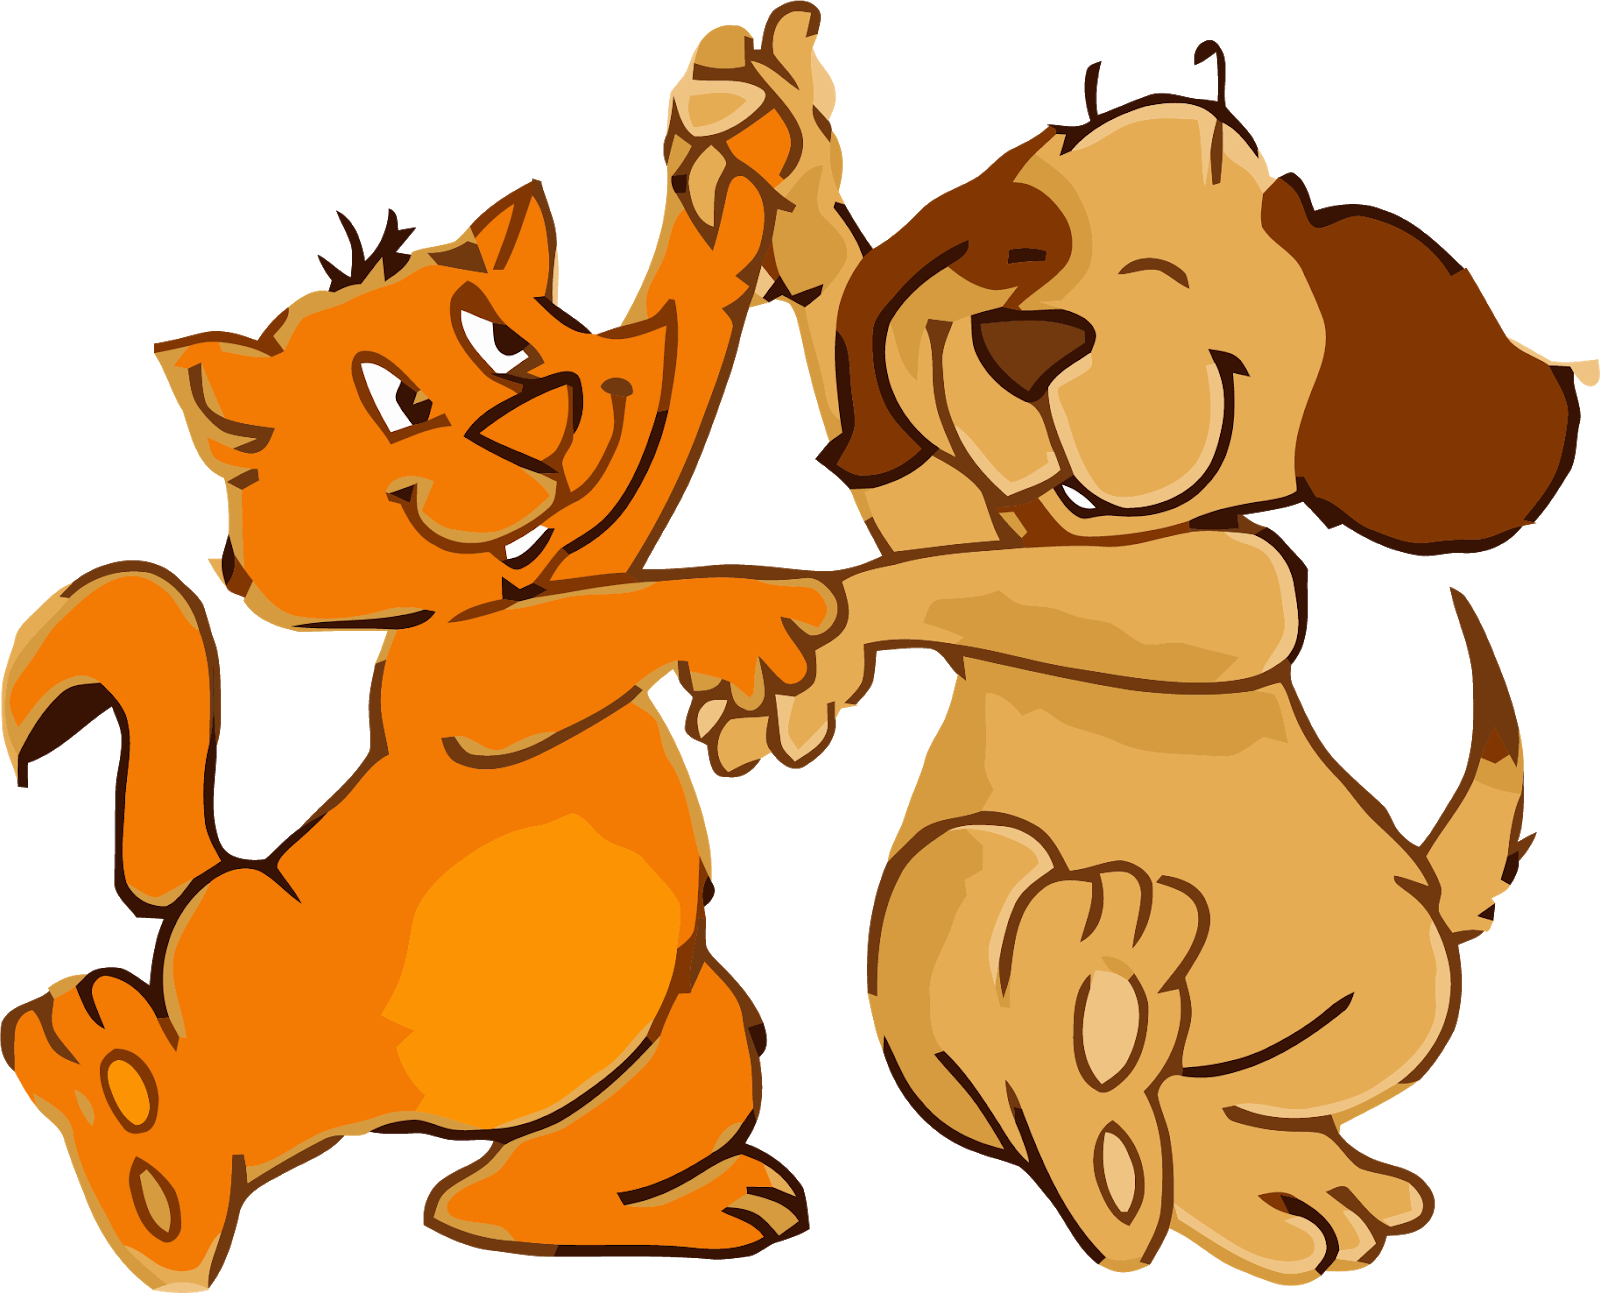 Dancing dog clipart banner transparent library Lunch Break: April 2018 banner transparent library